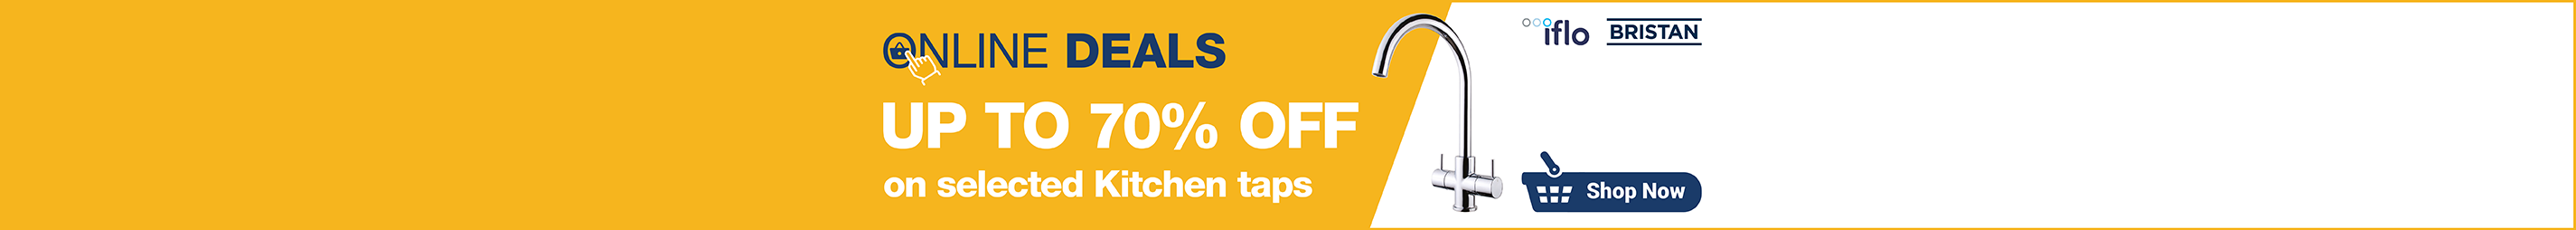 Up to 70% off Kitchen Taps